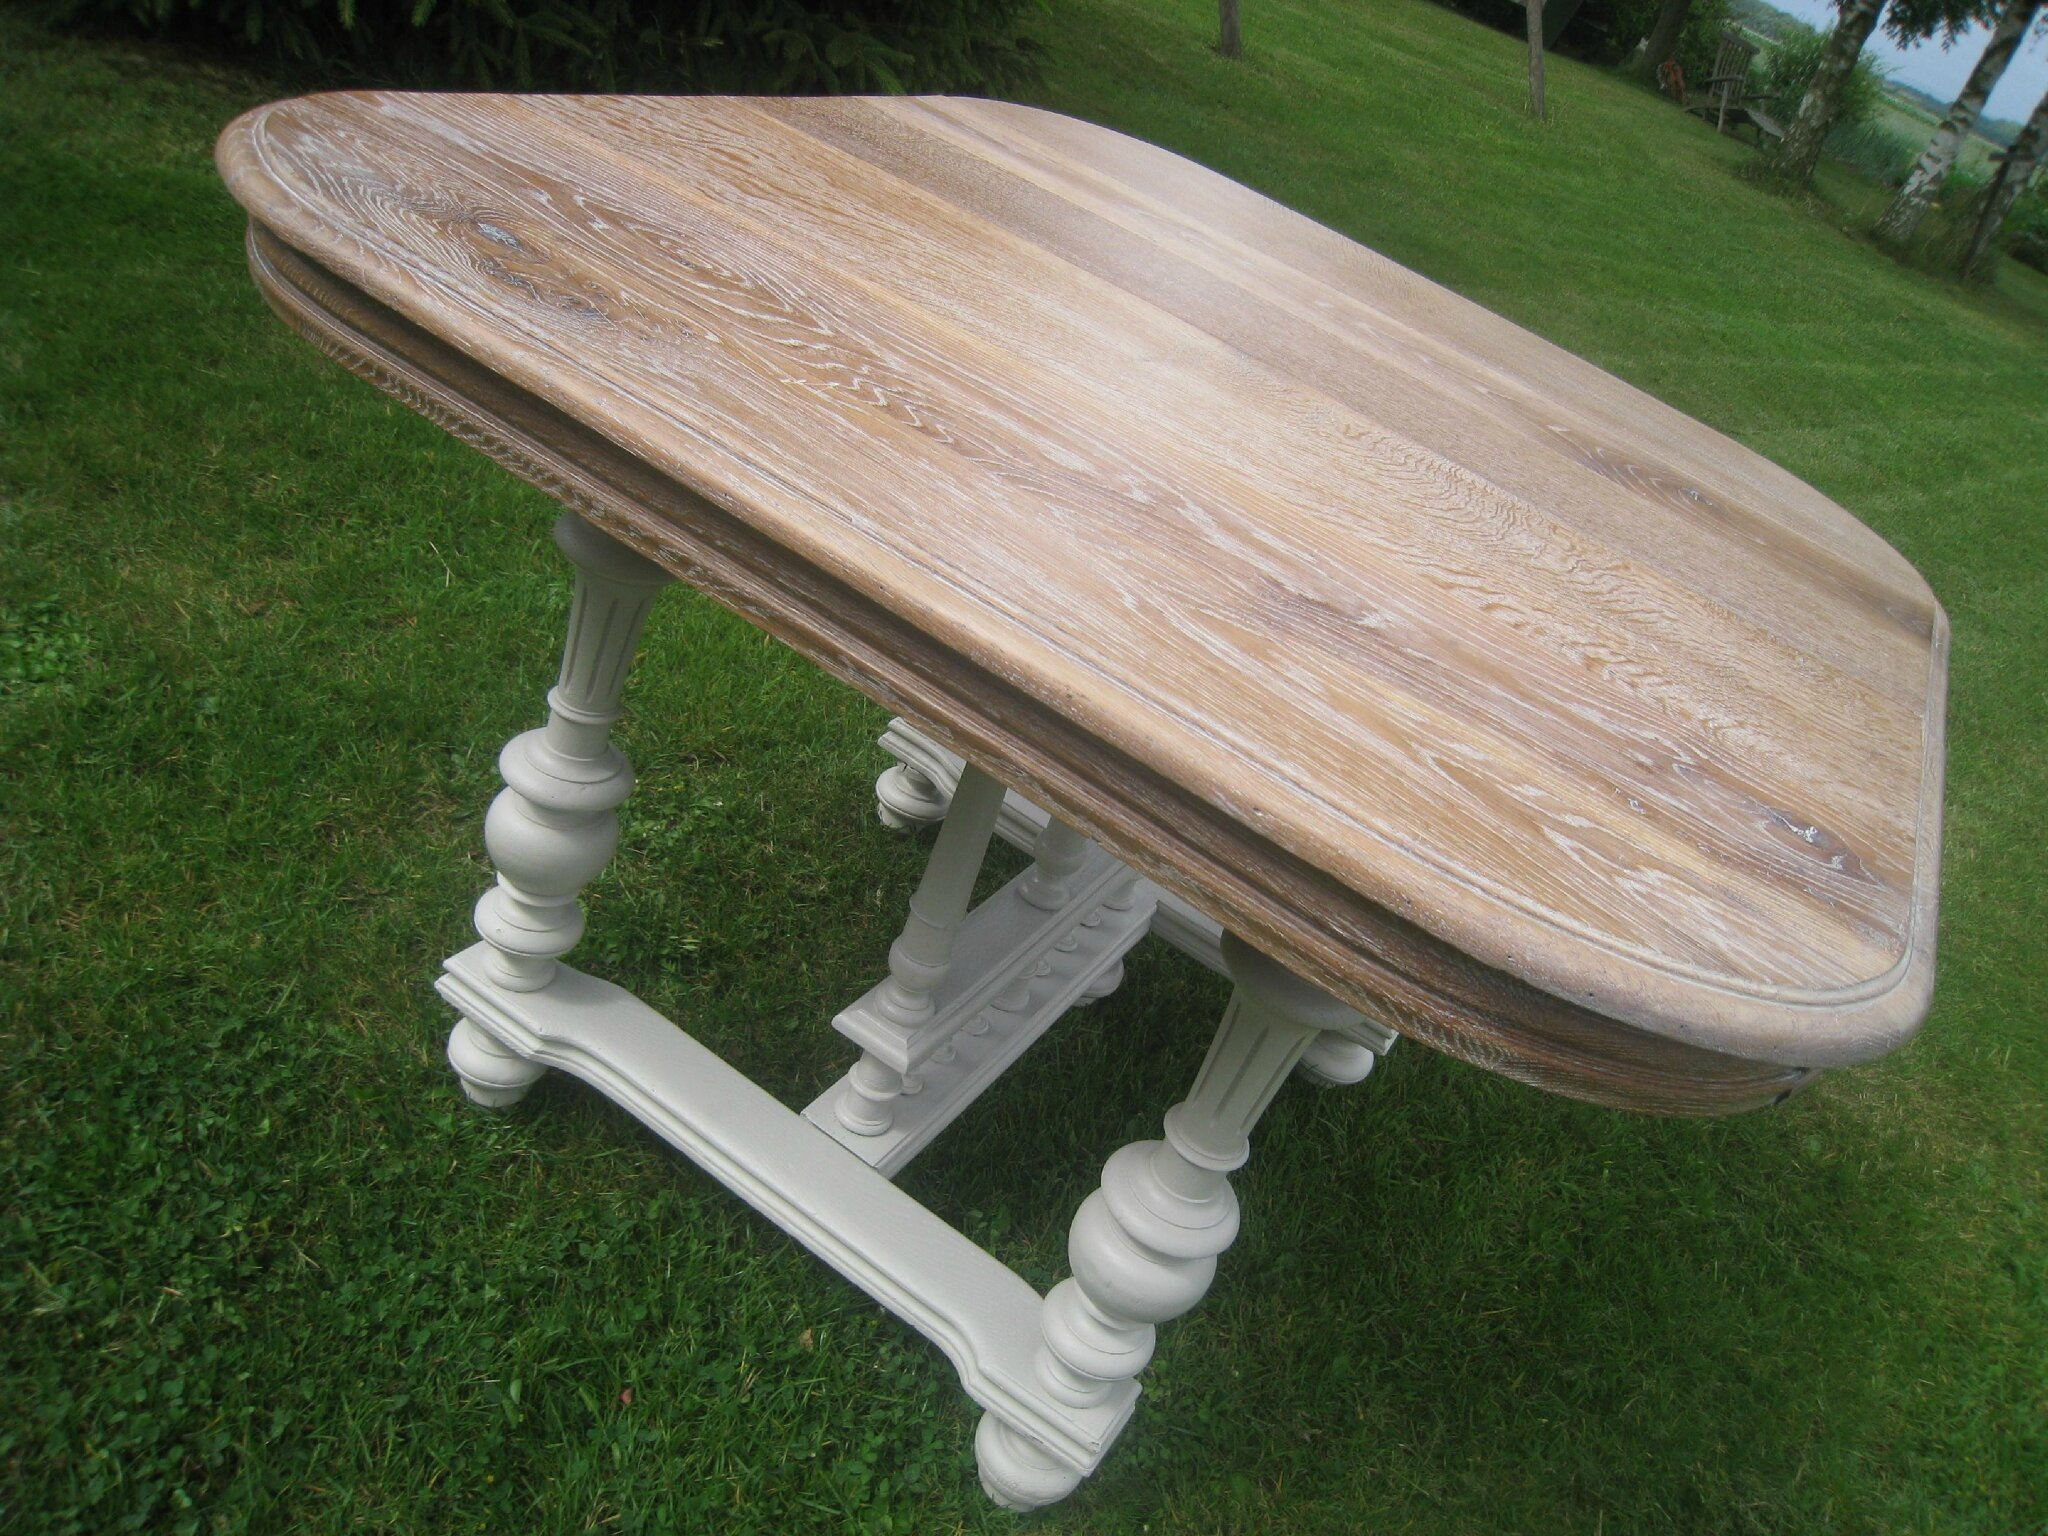 Les tables henri ii revisit es patines couleurs for Customiser une table en bois